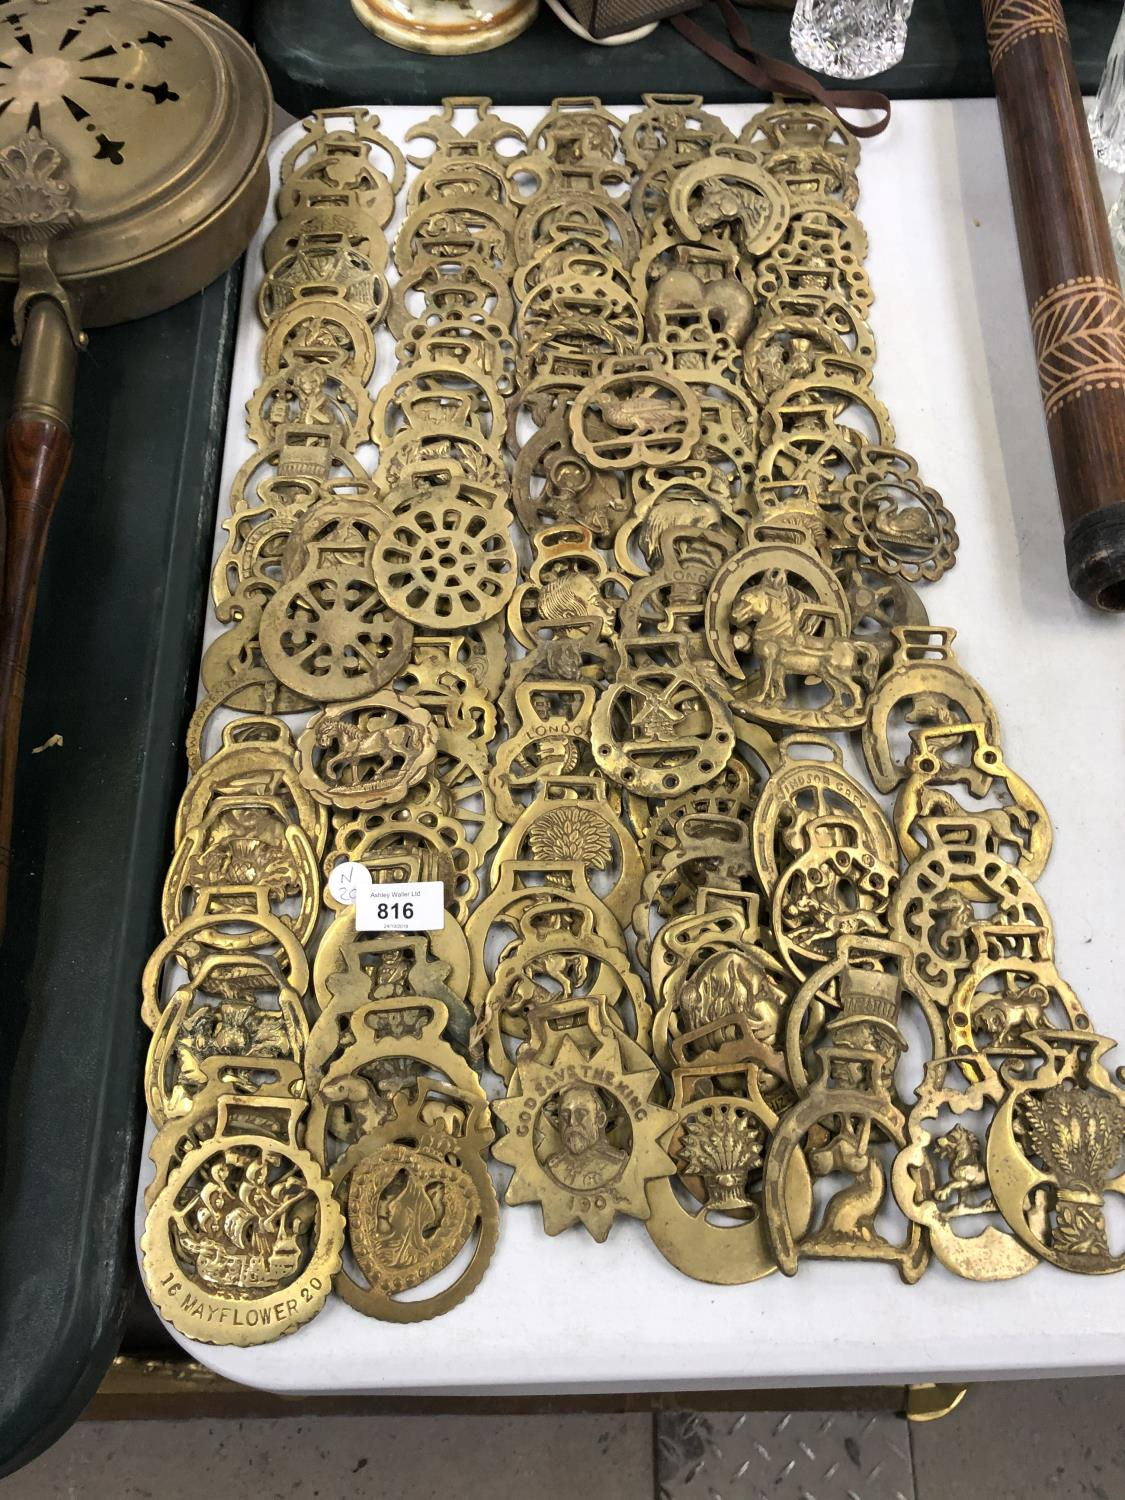 Lot 816 - A LARGE COLLECTION OF VINTAGE HORSE BRASSES